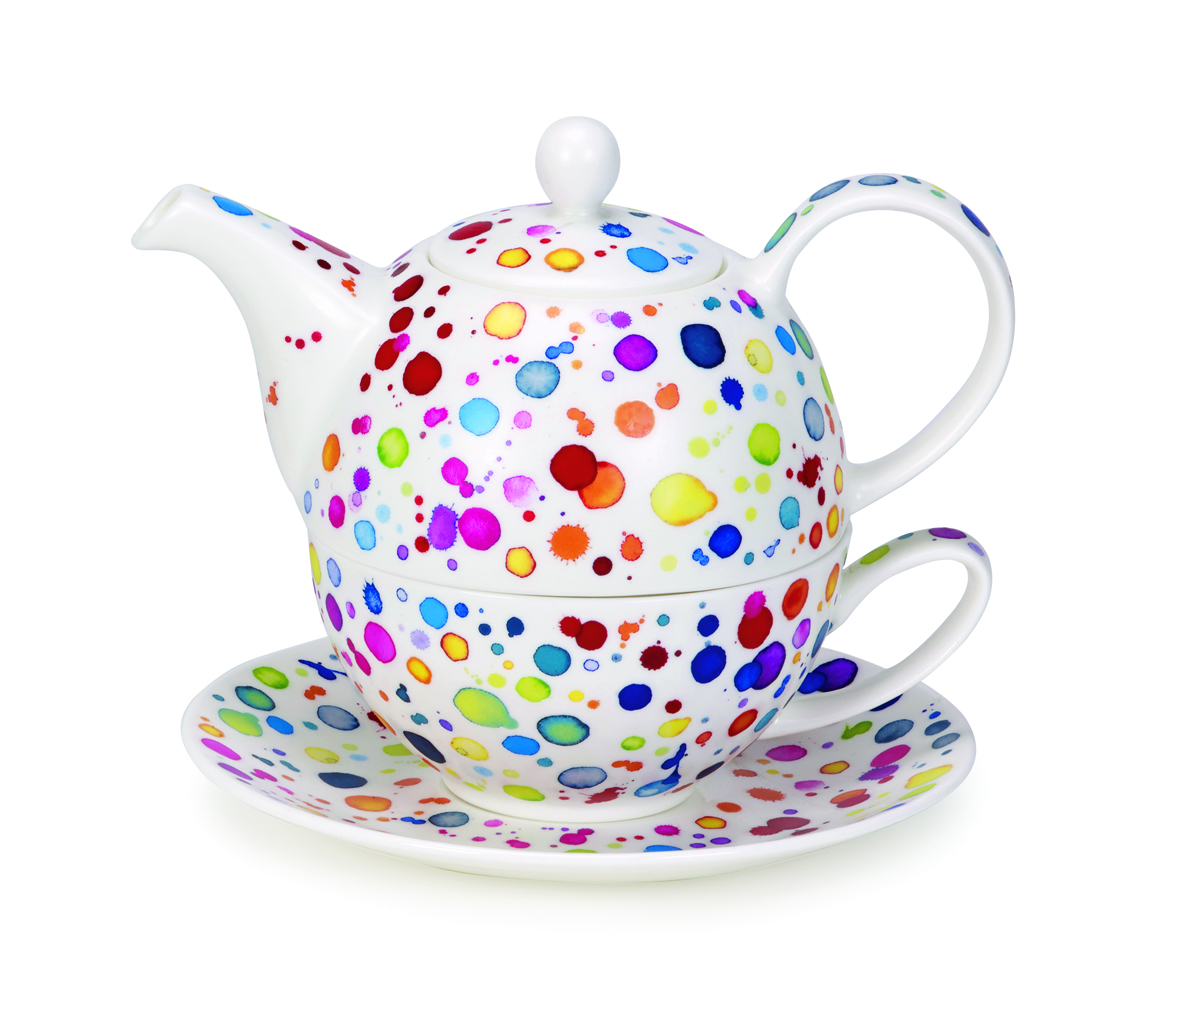 Win a Dunoon Handcrafted Teapot